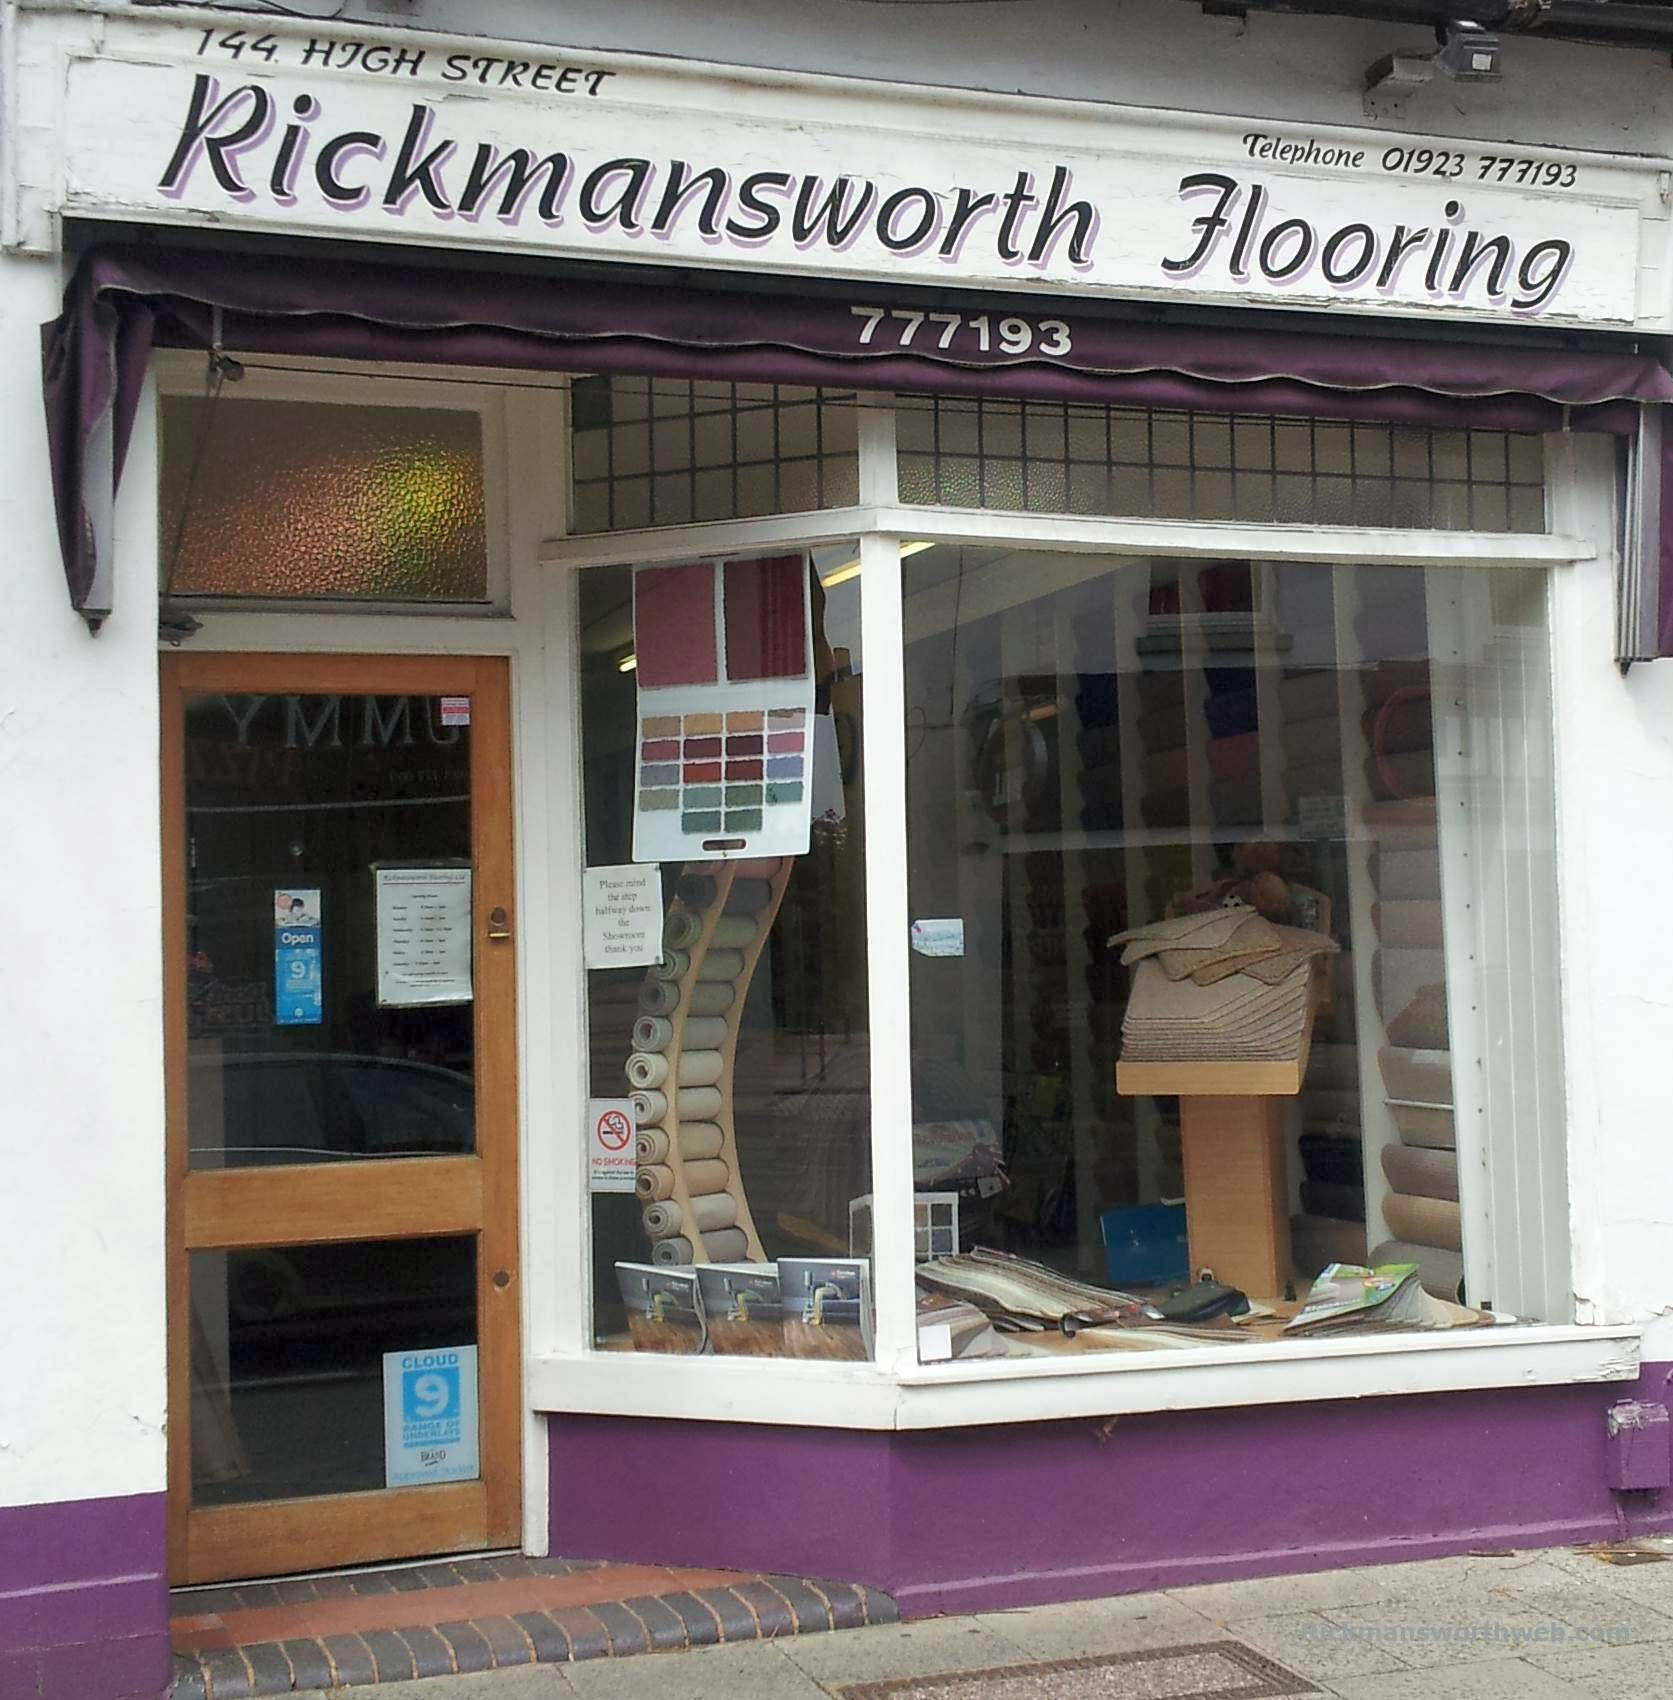 Rickmansworth Flooring June 2013